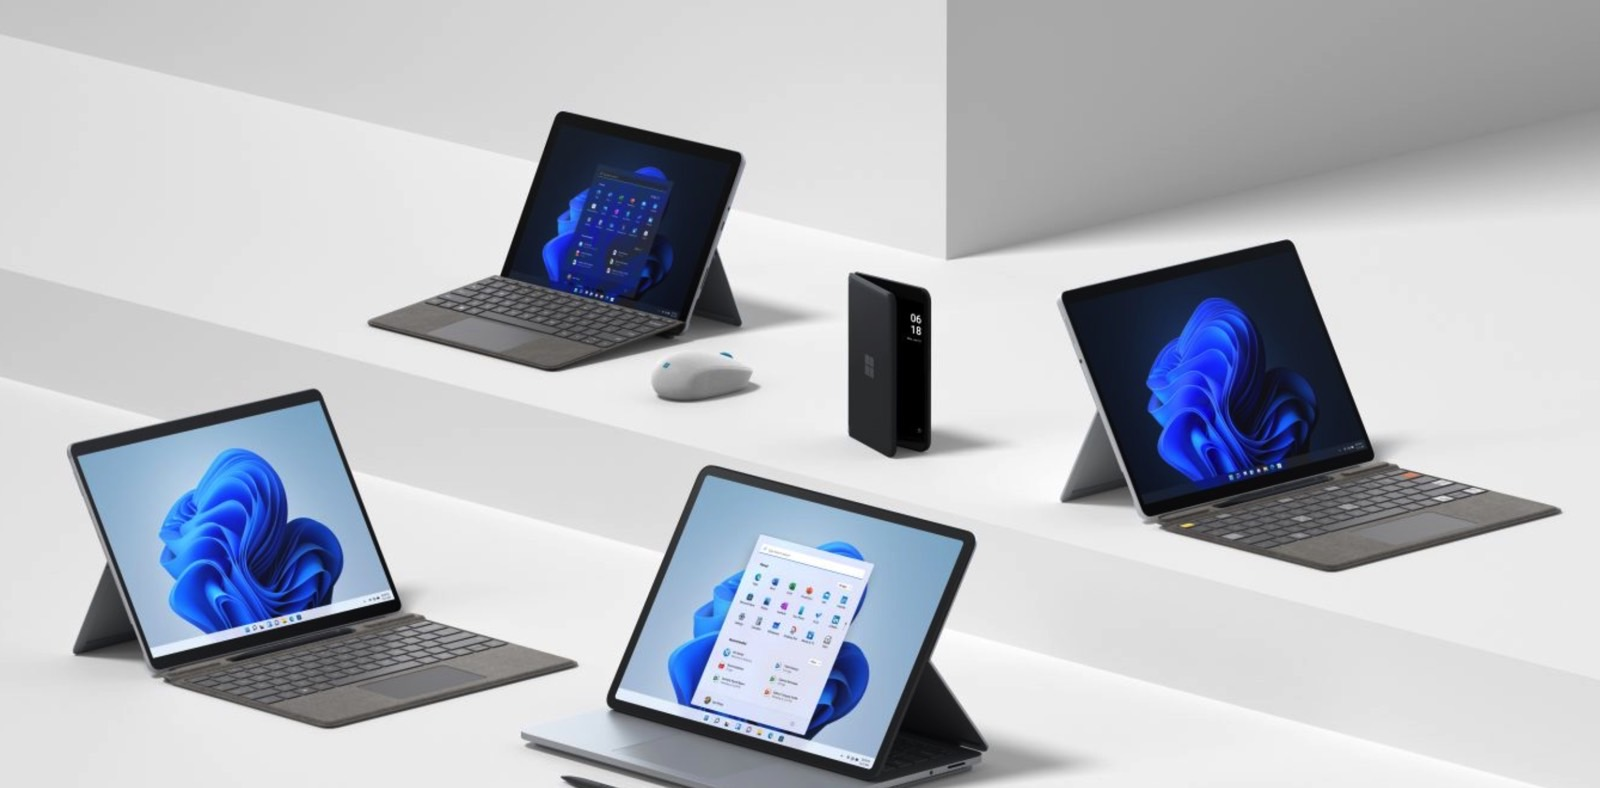 Microsoft's reveals new Surface lineup just in time for Windows 11